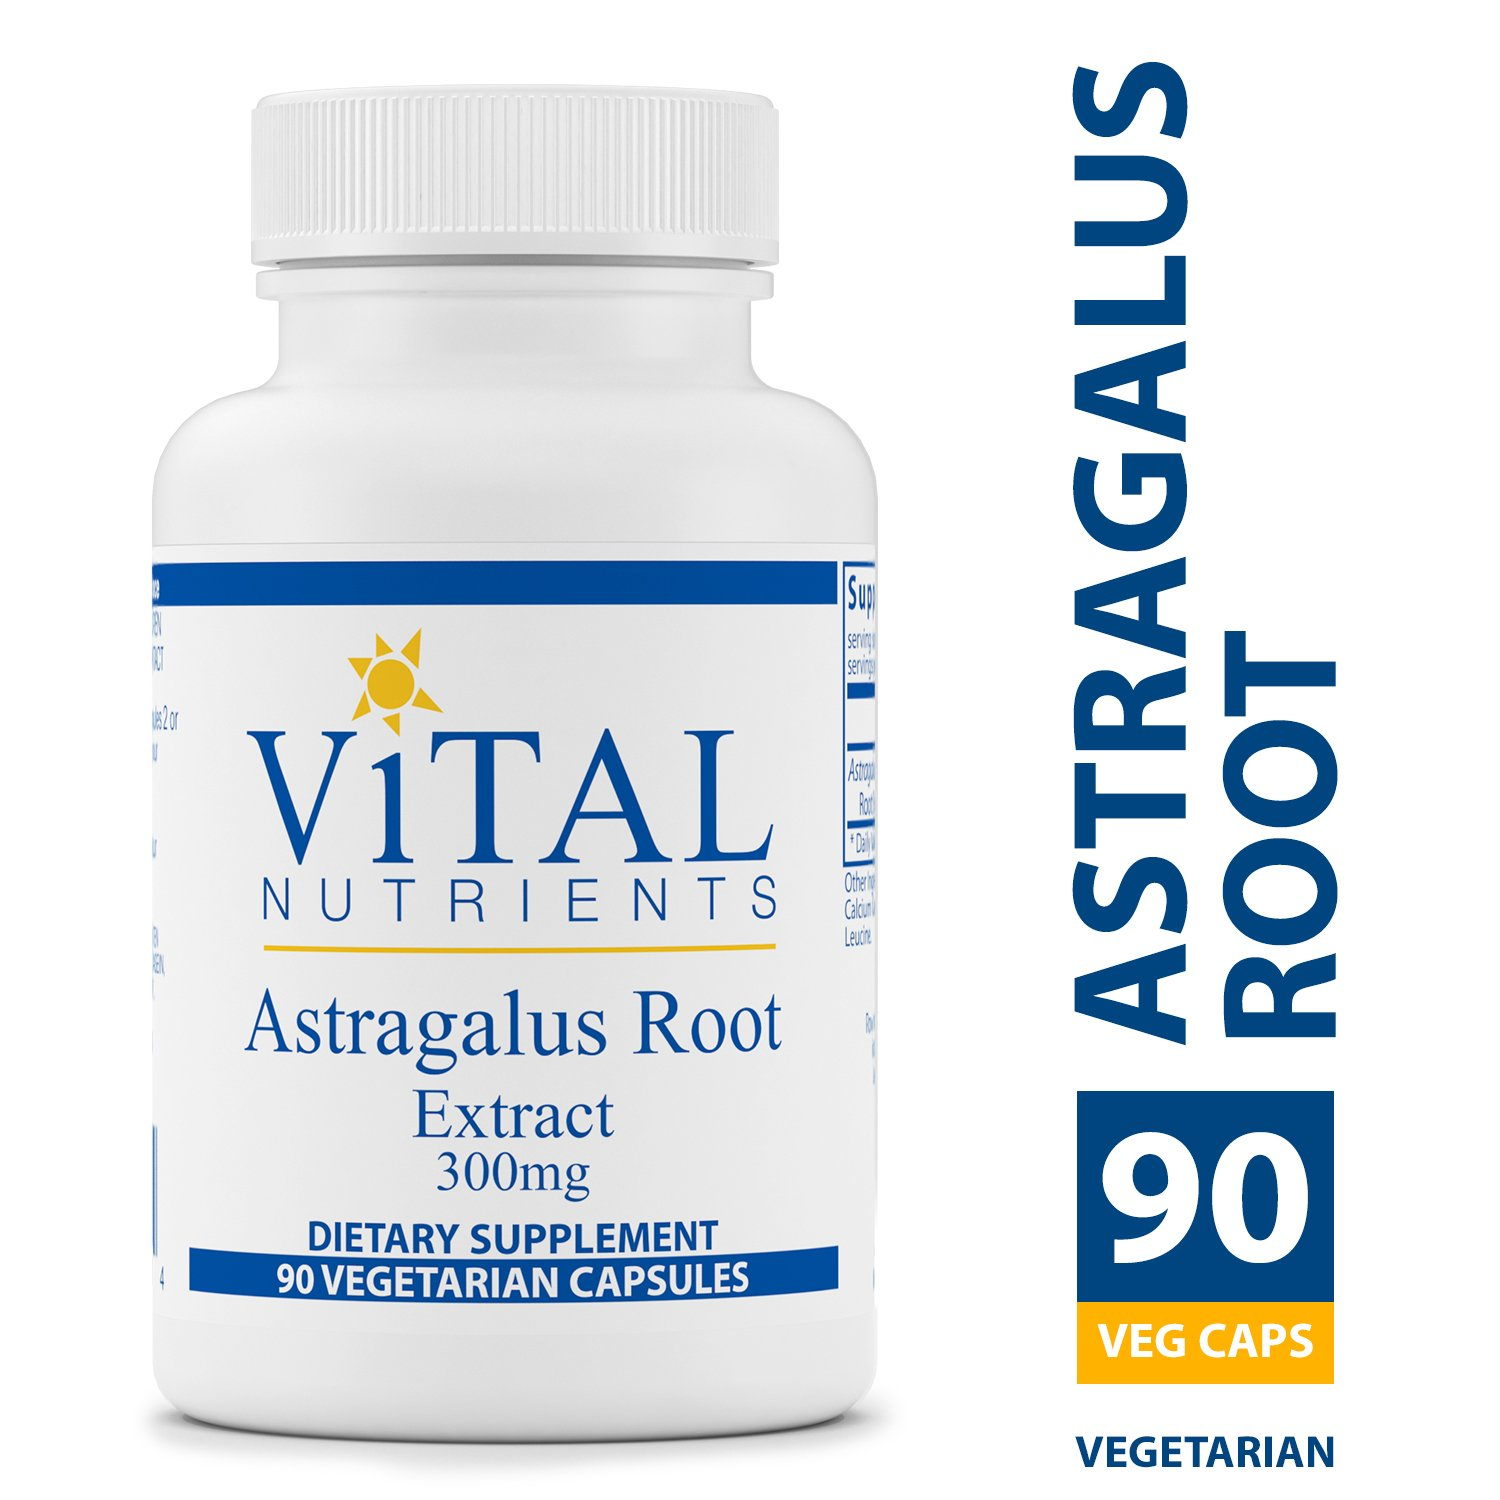 Vital Nutrients - Astragalus Root Extract 300 mg - Vegan Formula - Herbal Support for The Immune System - 90 Vegetarian Capsules per Bottle